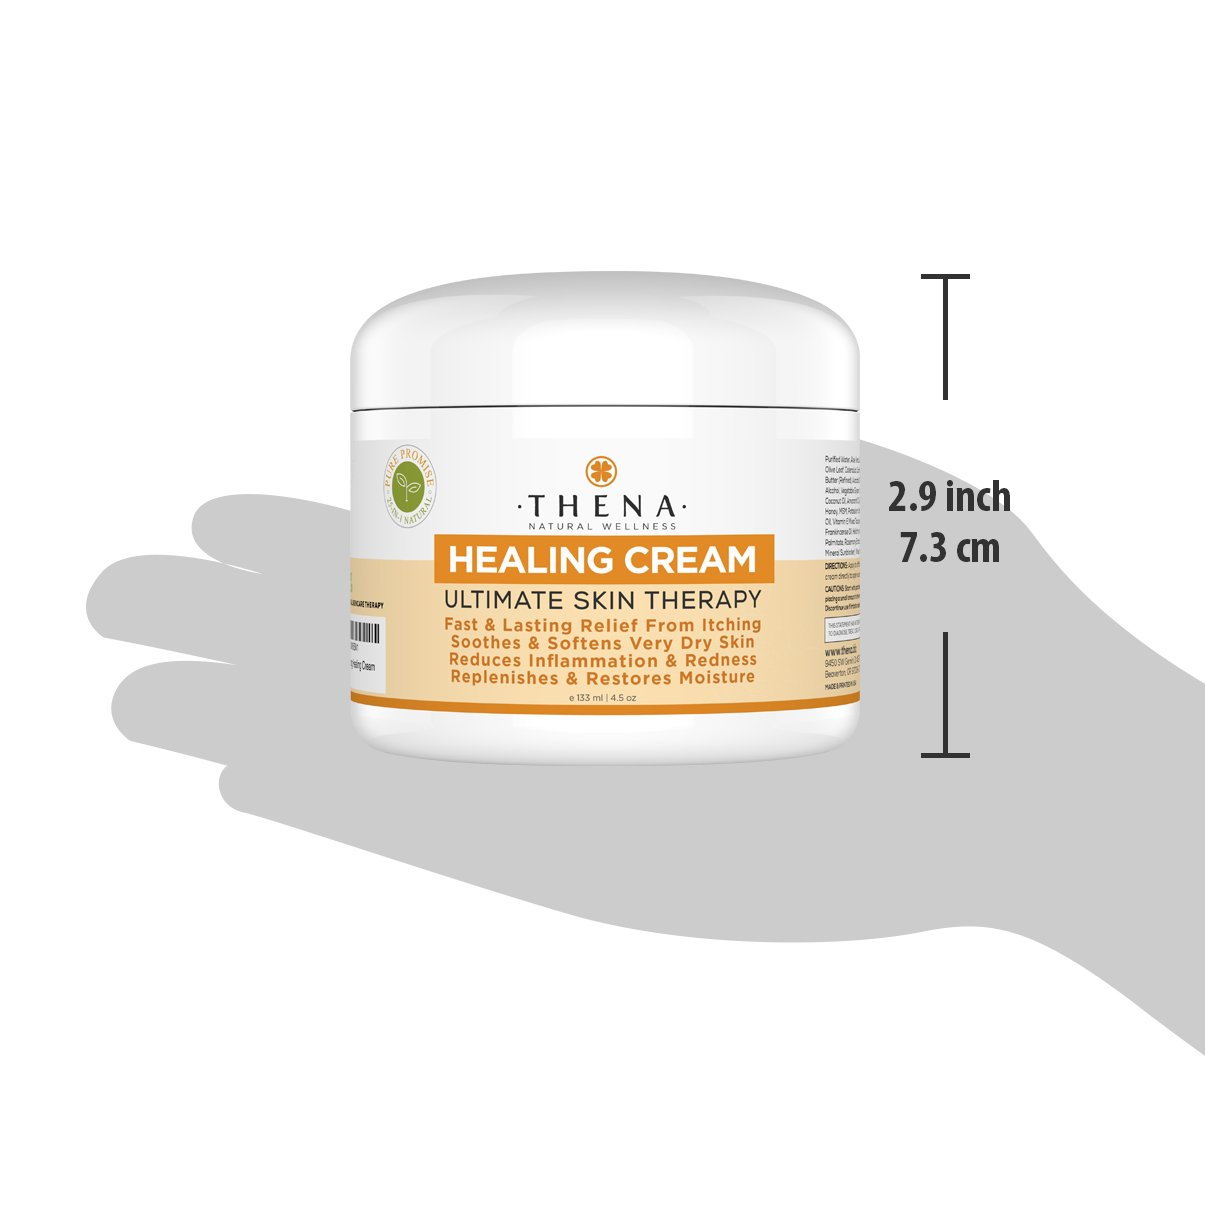 Best Healing Cream For Eczema Psoriasis Treatment, Natural Moisturizer For Face Body Dry Itchy Irritated Cracked Skin, Anti Itch Relief Therapy Lotion Relieve Atopic Dermatitis Rashes Rosacea Shingles by THENA Natural Wellness (Image #4)